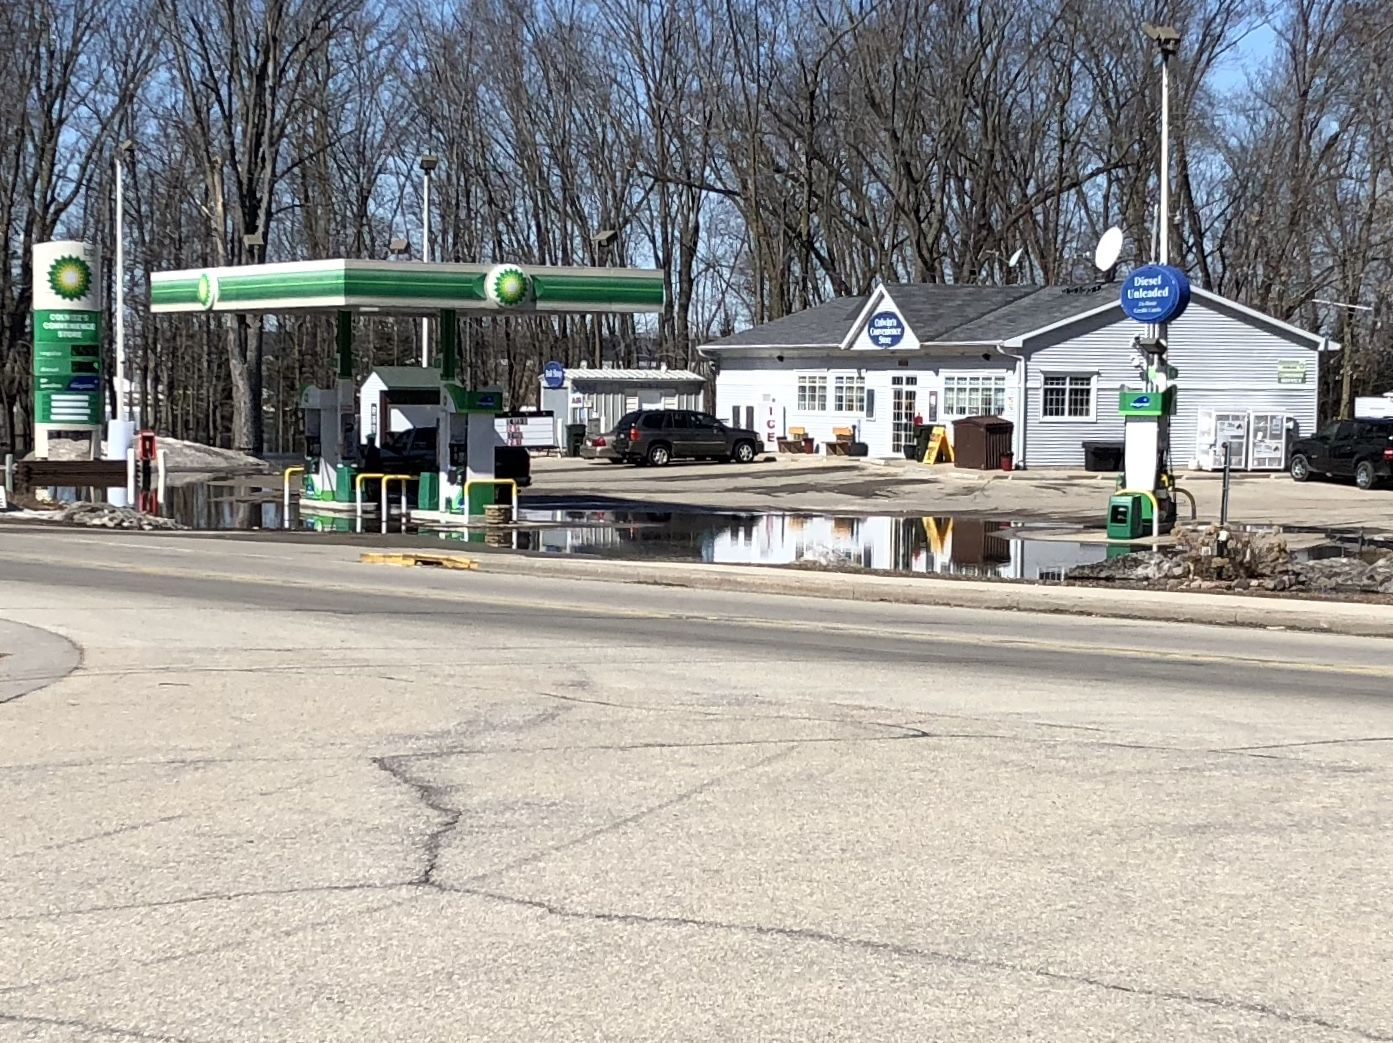 Flood waters settle in low spots of the parking lot of a gas station on Hwy. 54 in Shiocton March 22, 2019. (WLUK/Eric Peterson)